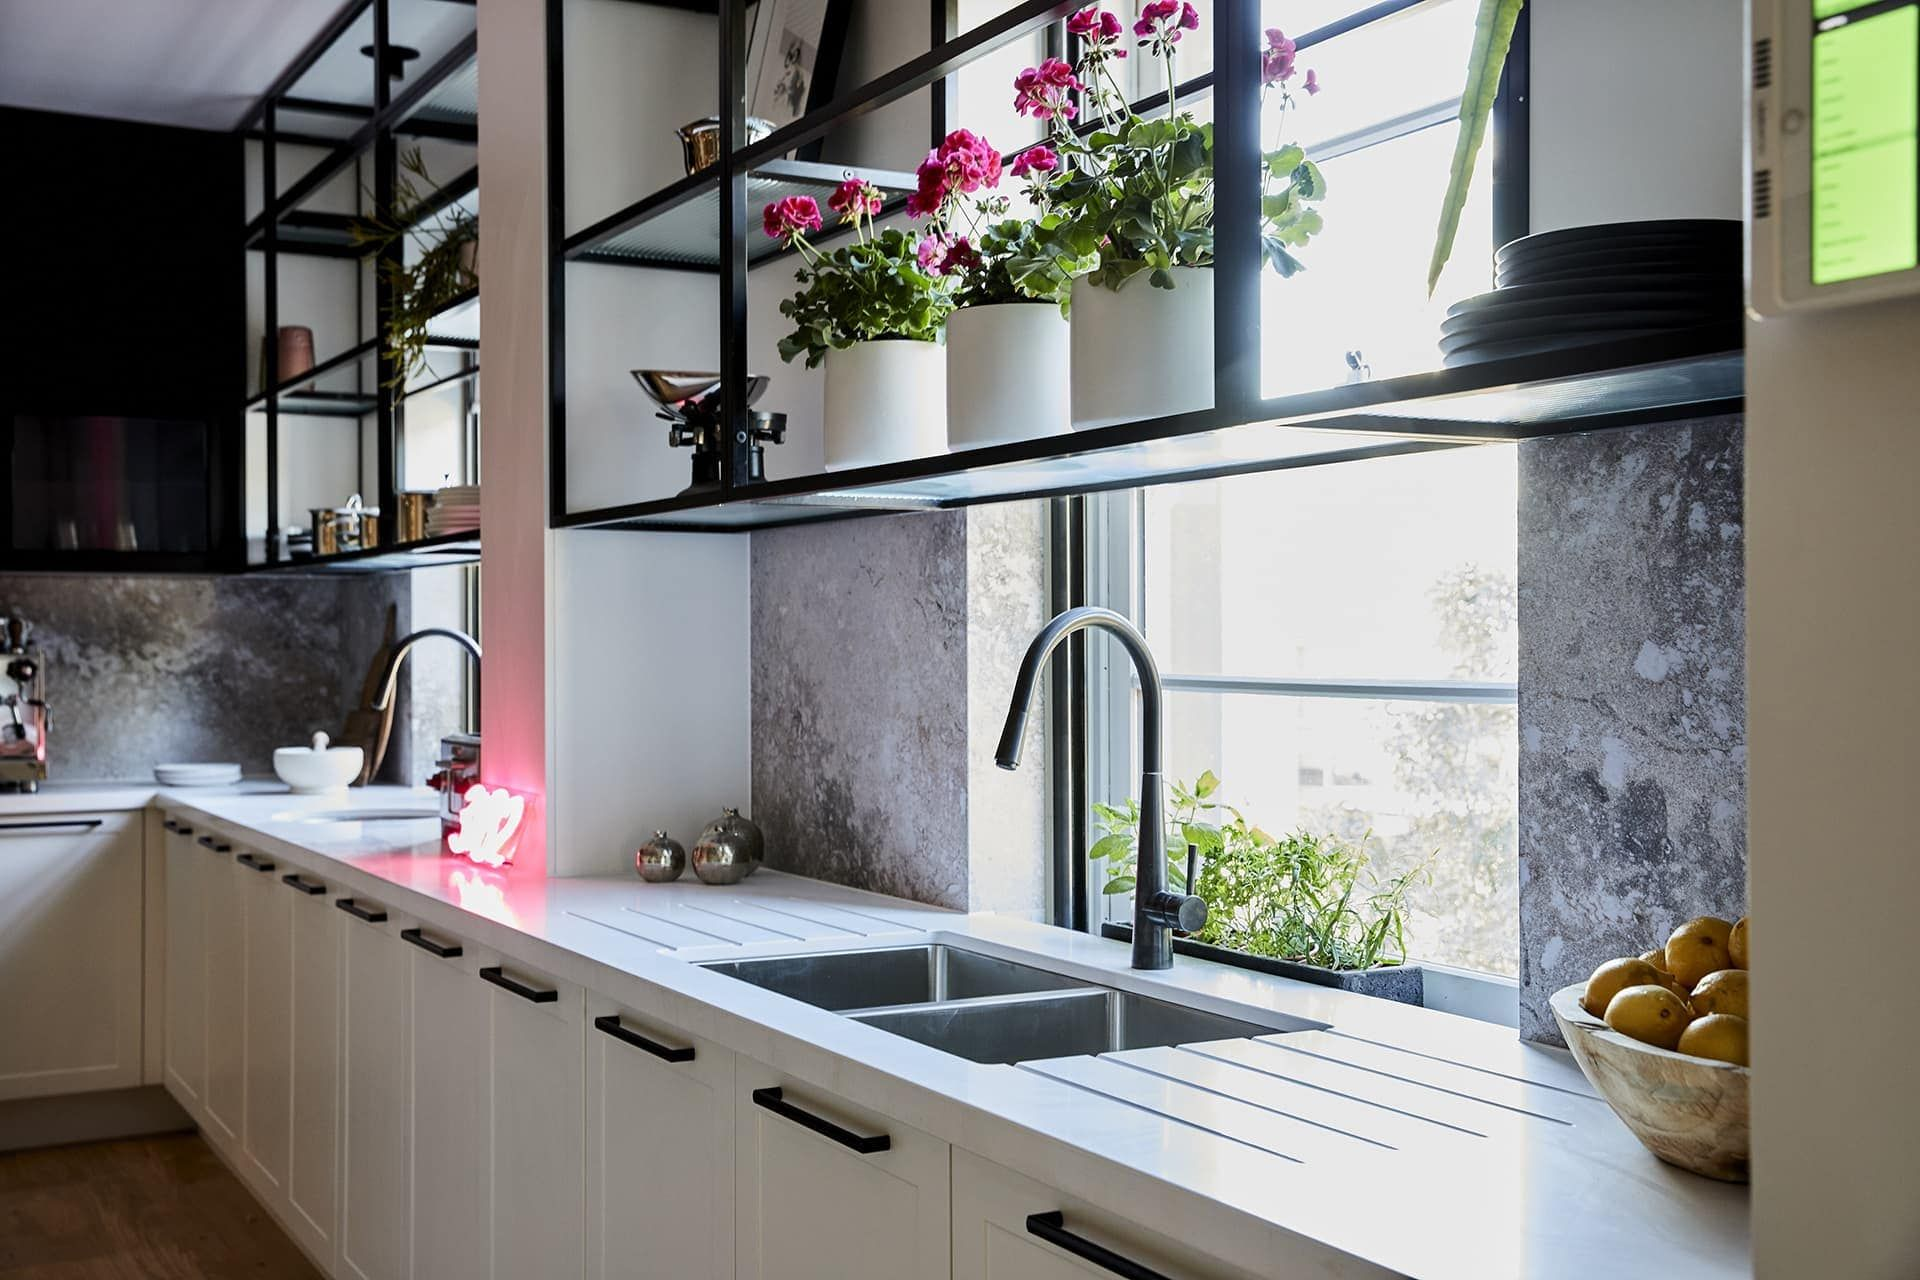 Coloured Kitchen Cabinets Are The Next Big Trend Tlc Interiors In 2020 Kitchen Cabinet Colors Kitchen Interior Kitchen Cabinets